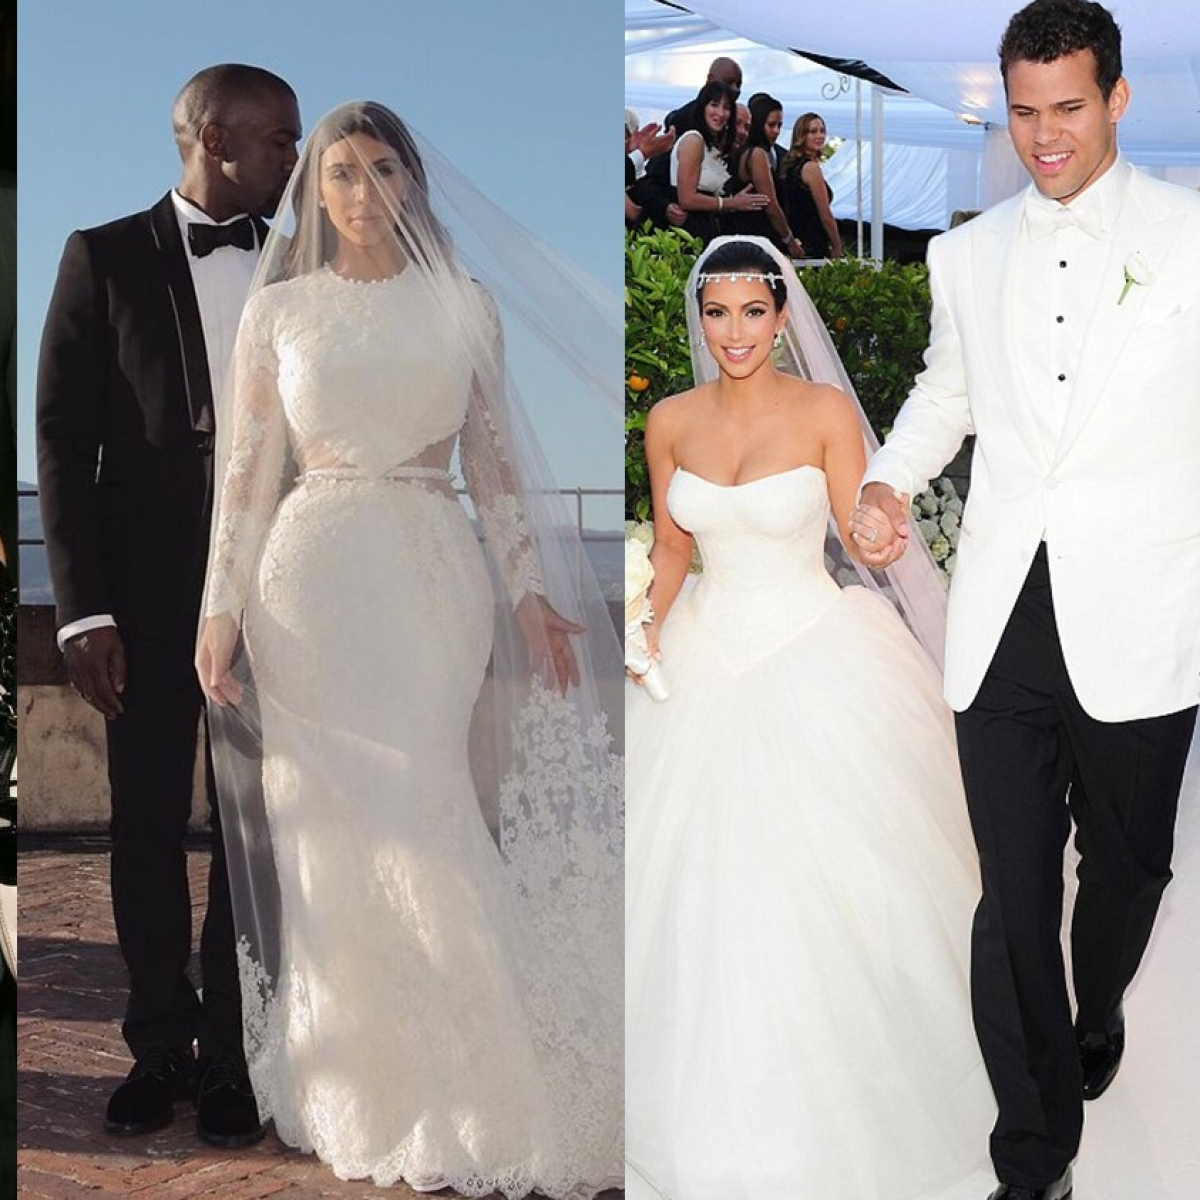 Kim Kardashian's Third Divorce: Who are her previous husbands?